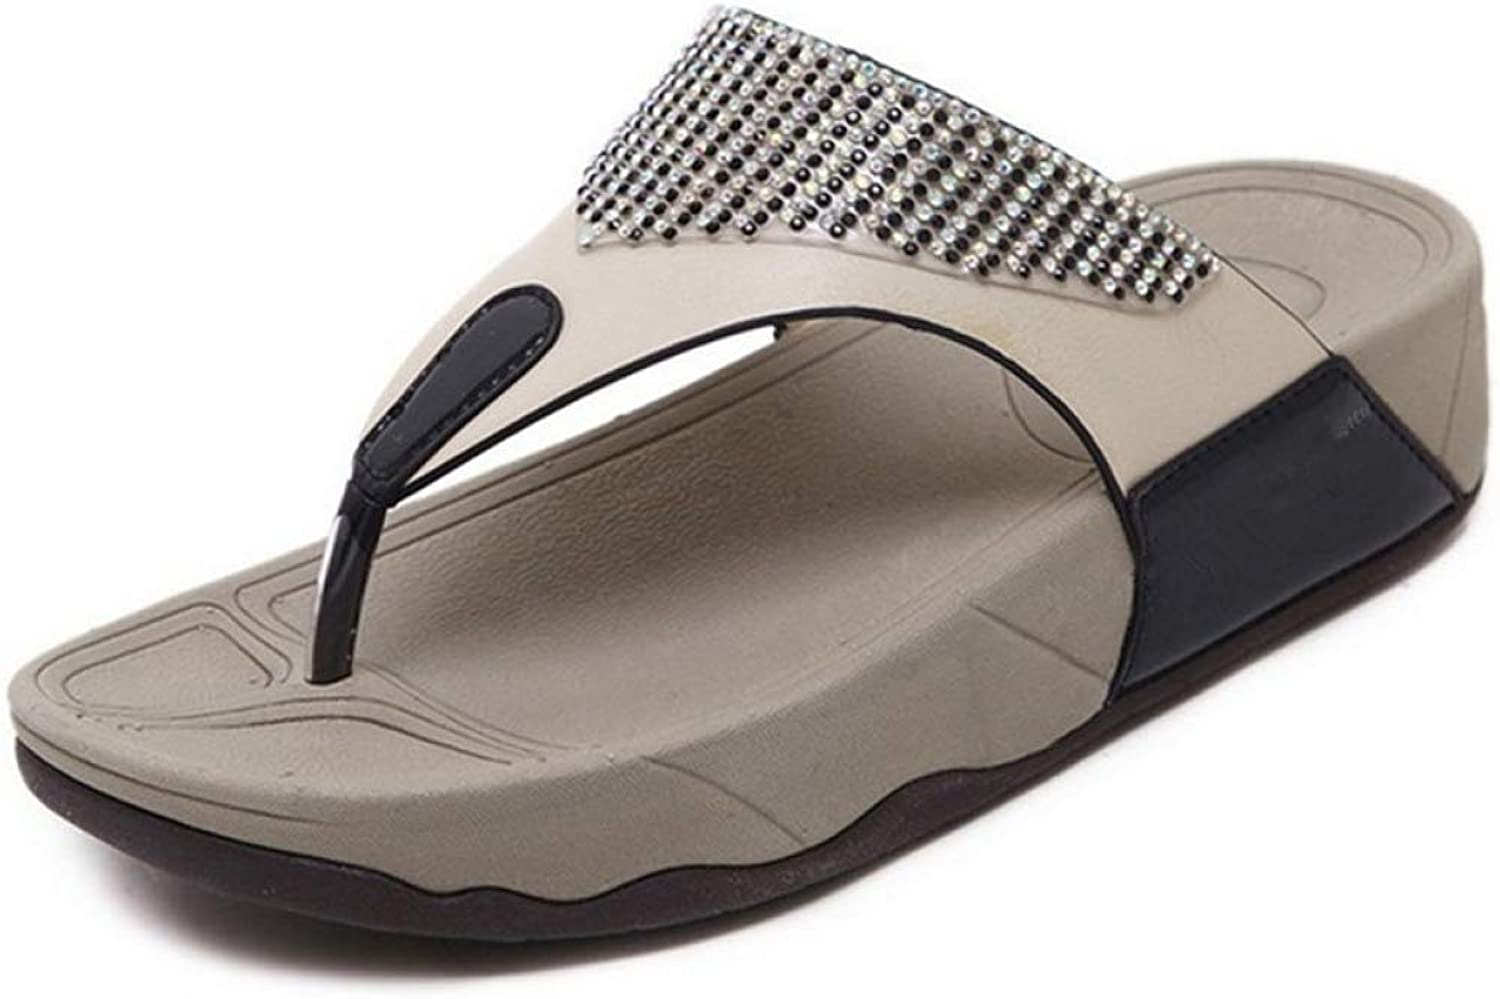 MEIZOKEN Women's Flat Wedge Sandals Diamond Trim Slippers Beach Non-Slip Comfortable Flip Flops